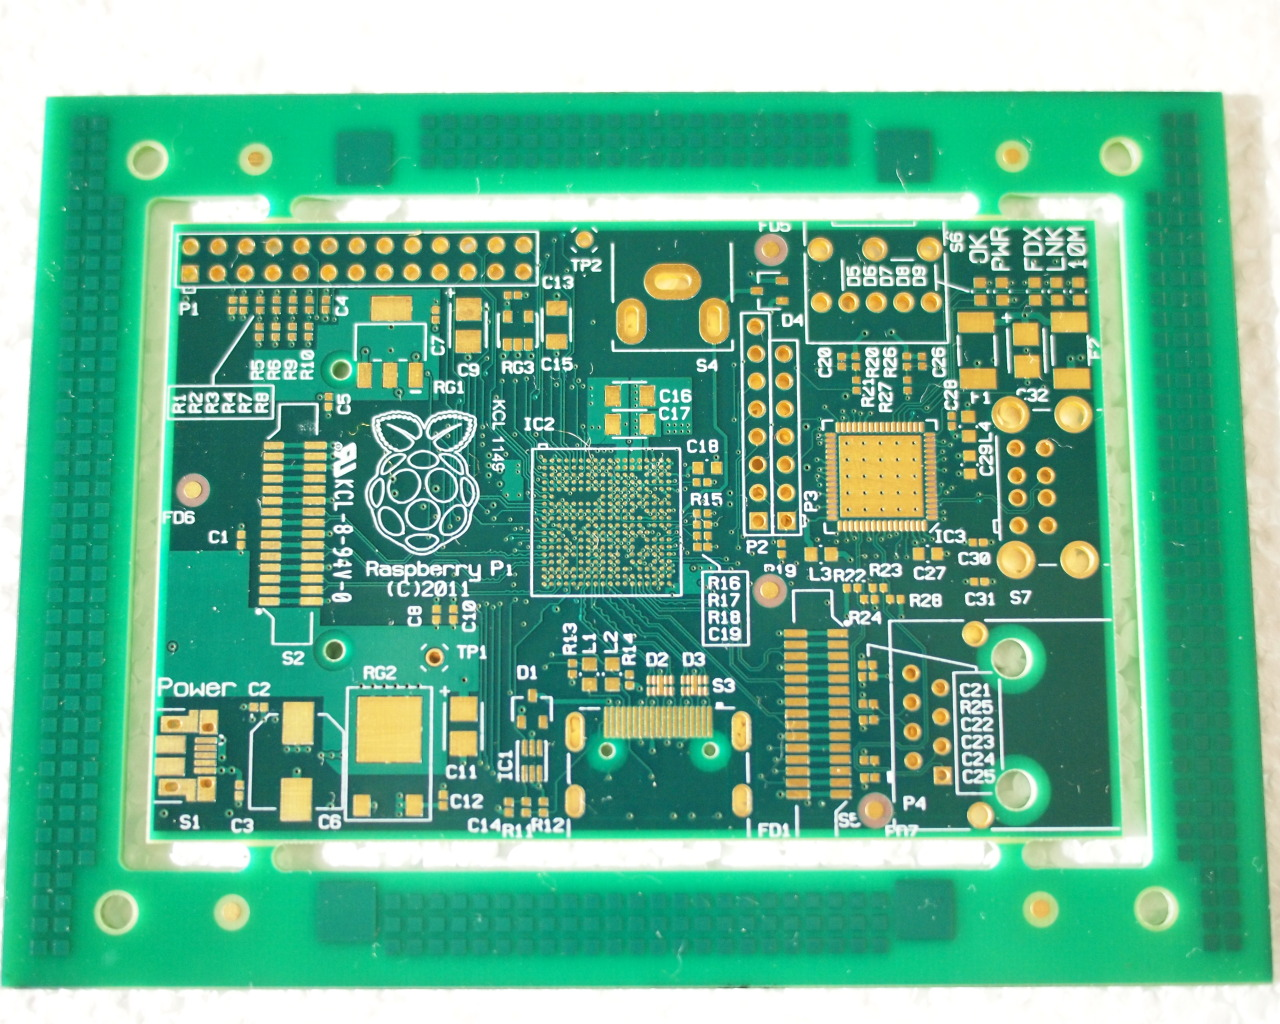 Rpiblog Hardware Wiringpi Bcm2835 Raspberry Pi Uses The Broadcom